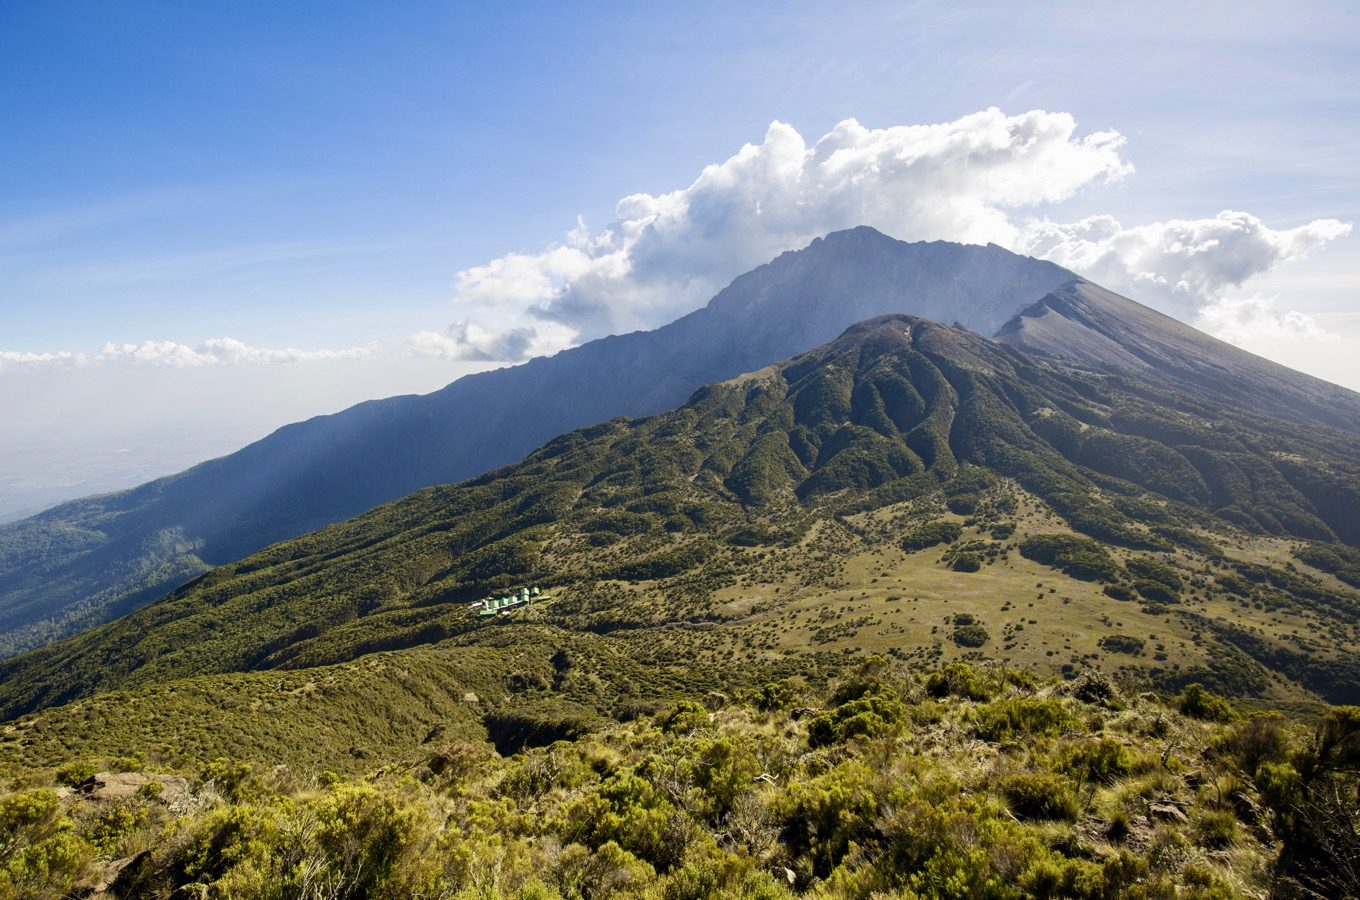 Further view to the summit of Mount Meru